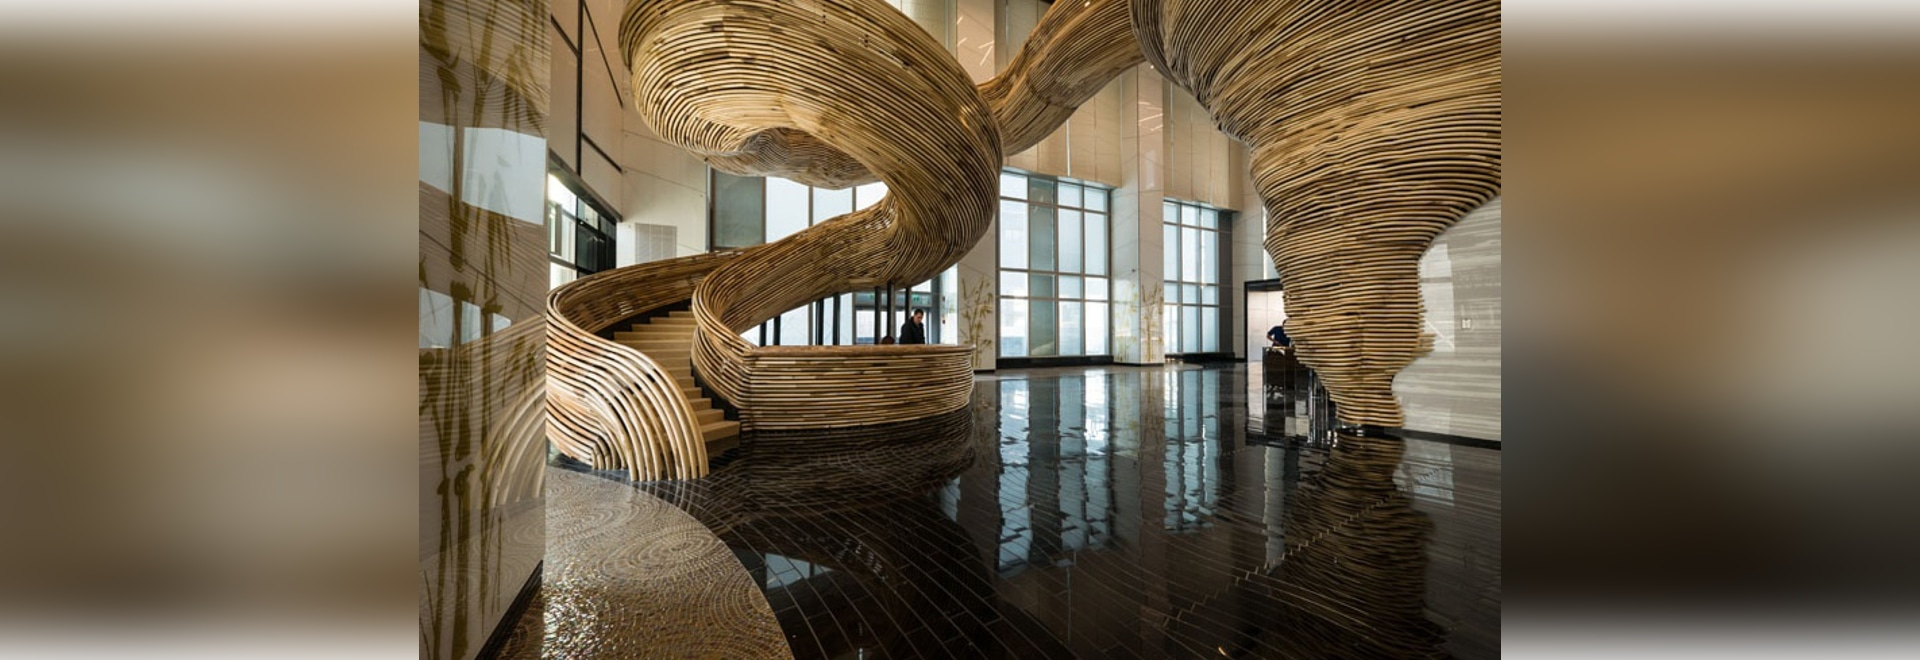 An Amazingly Sculptural Spiral Staircase Has Been Installed In The Lobby Of  This Office Building